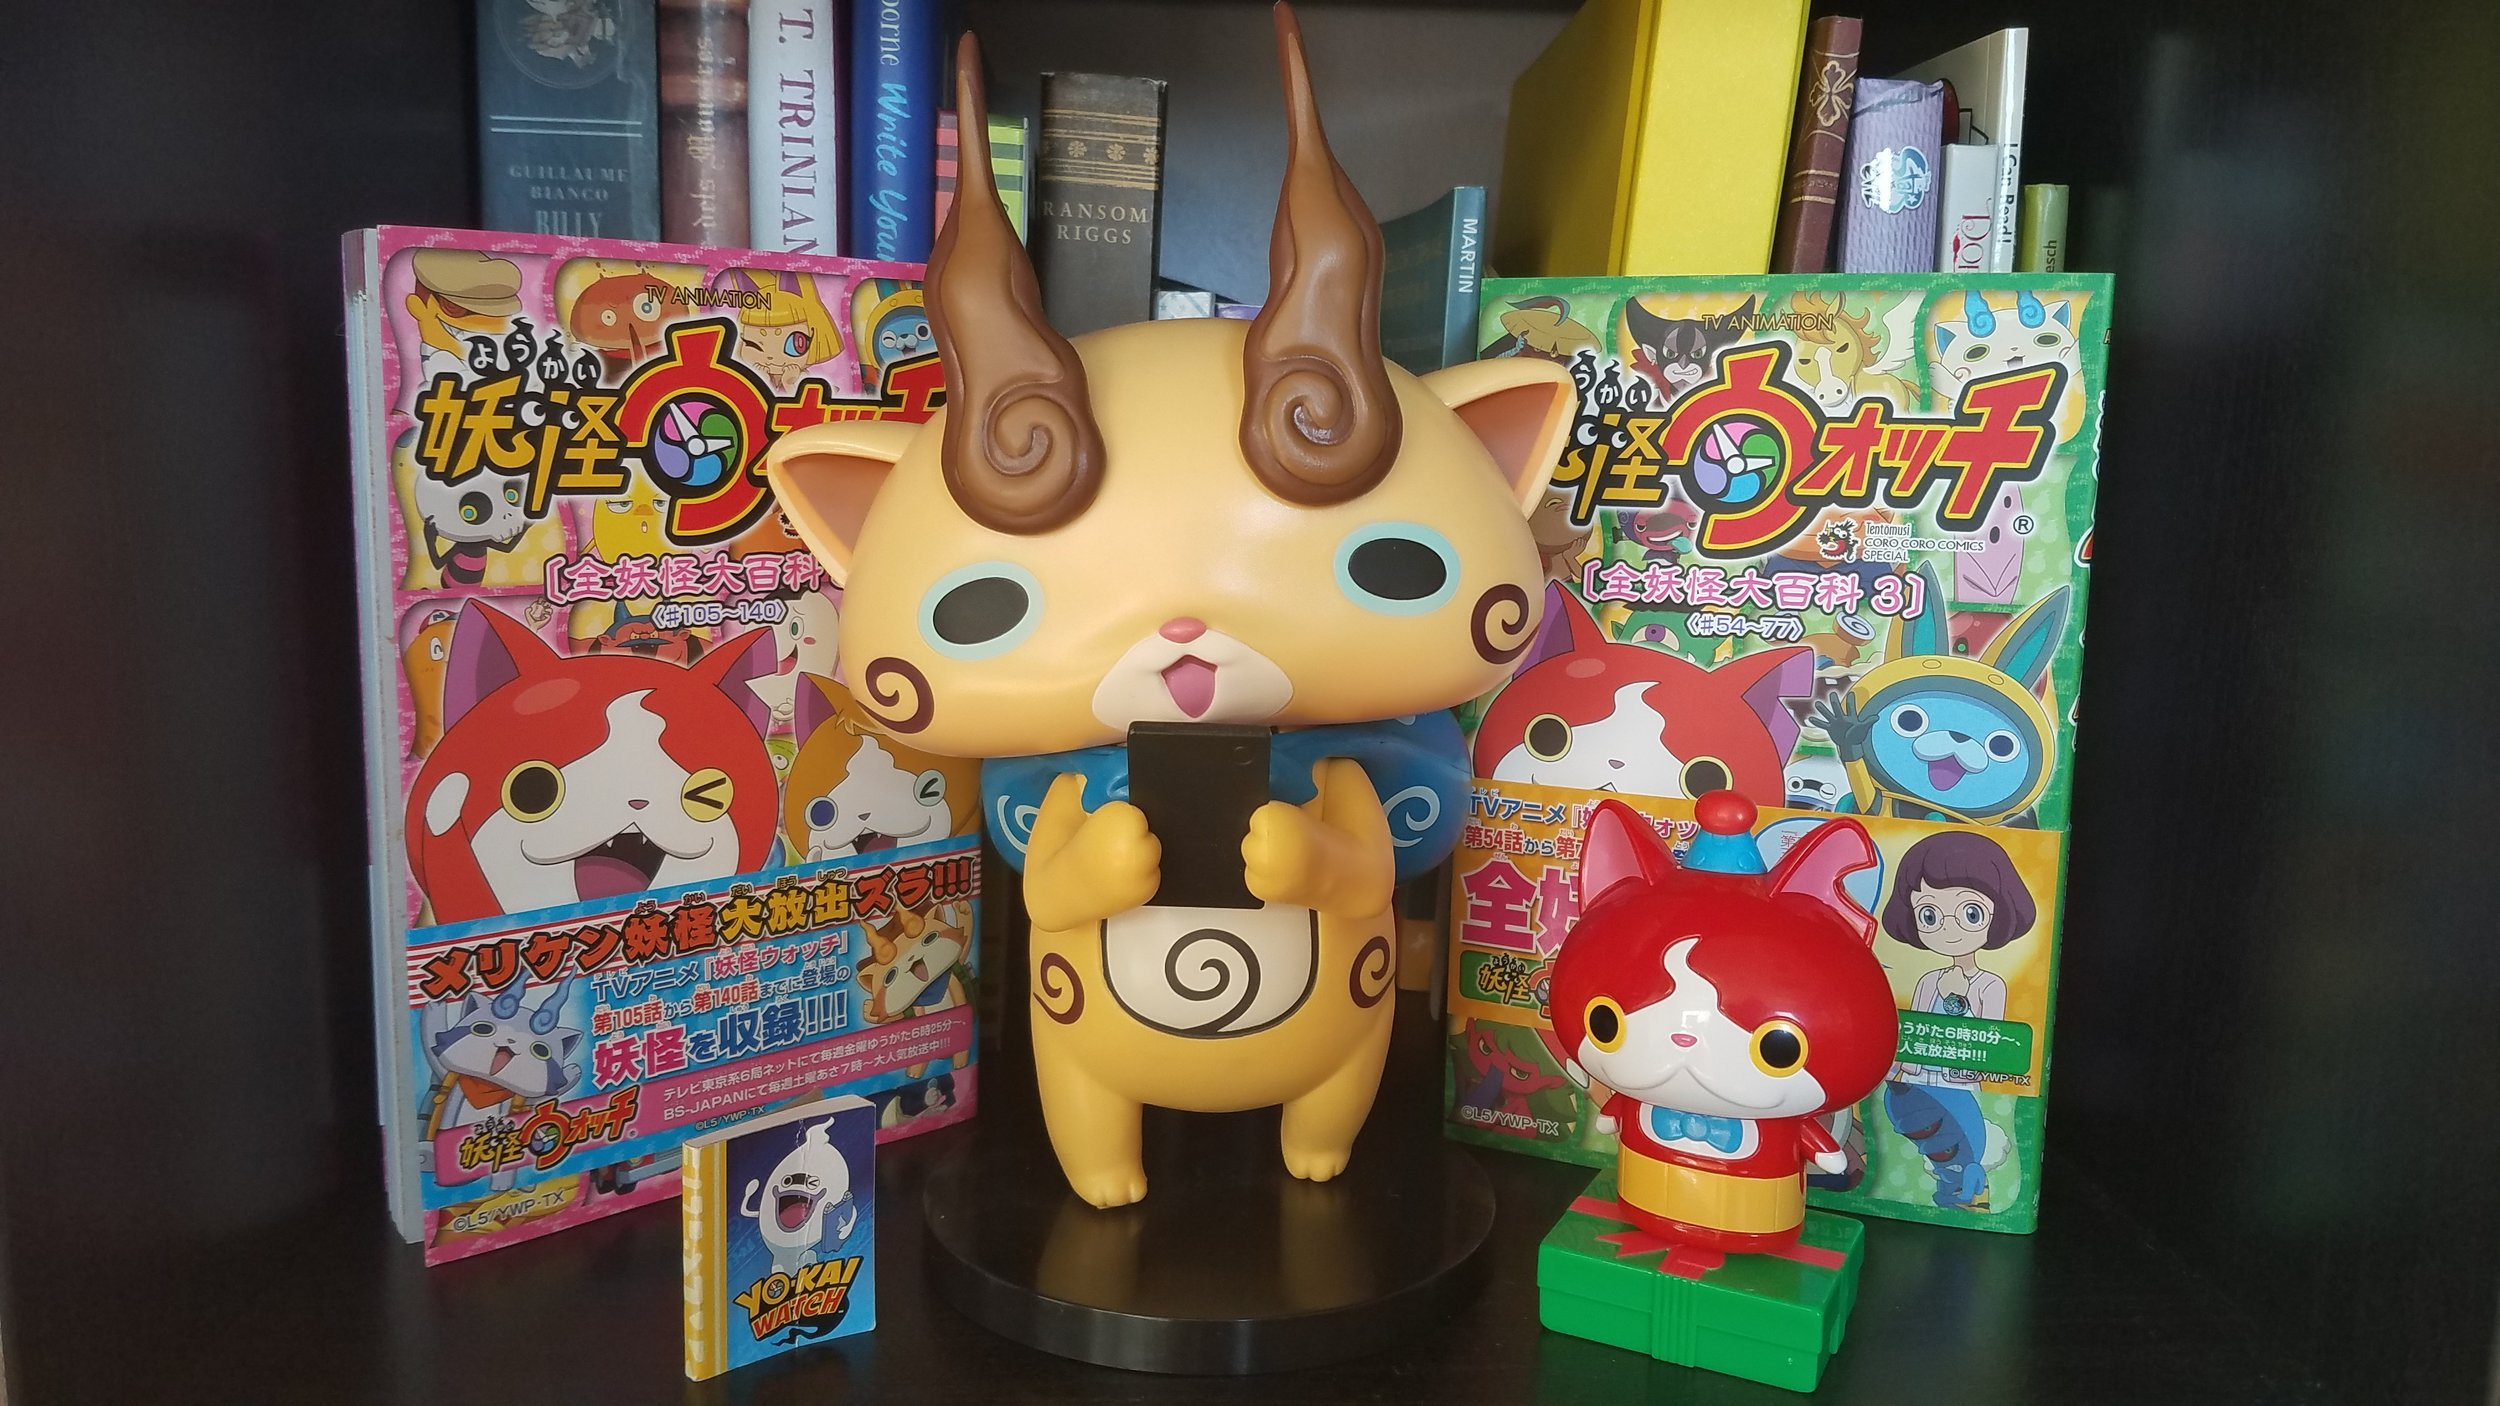 Yokai Watch Shrine!